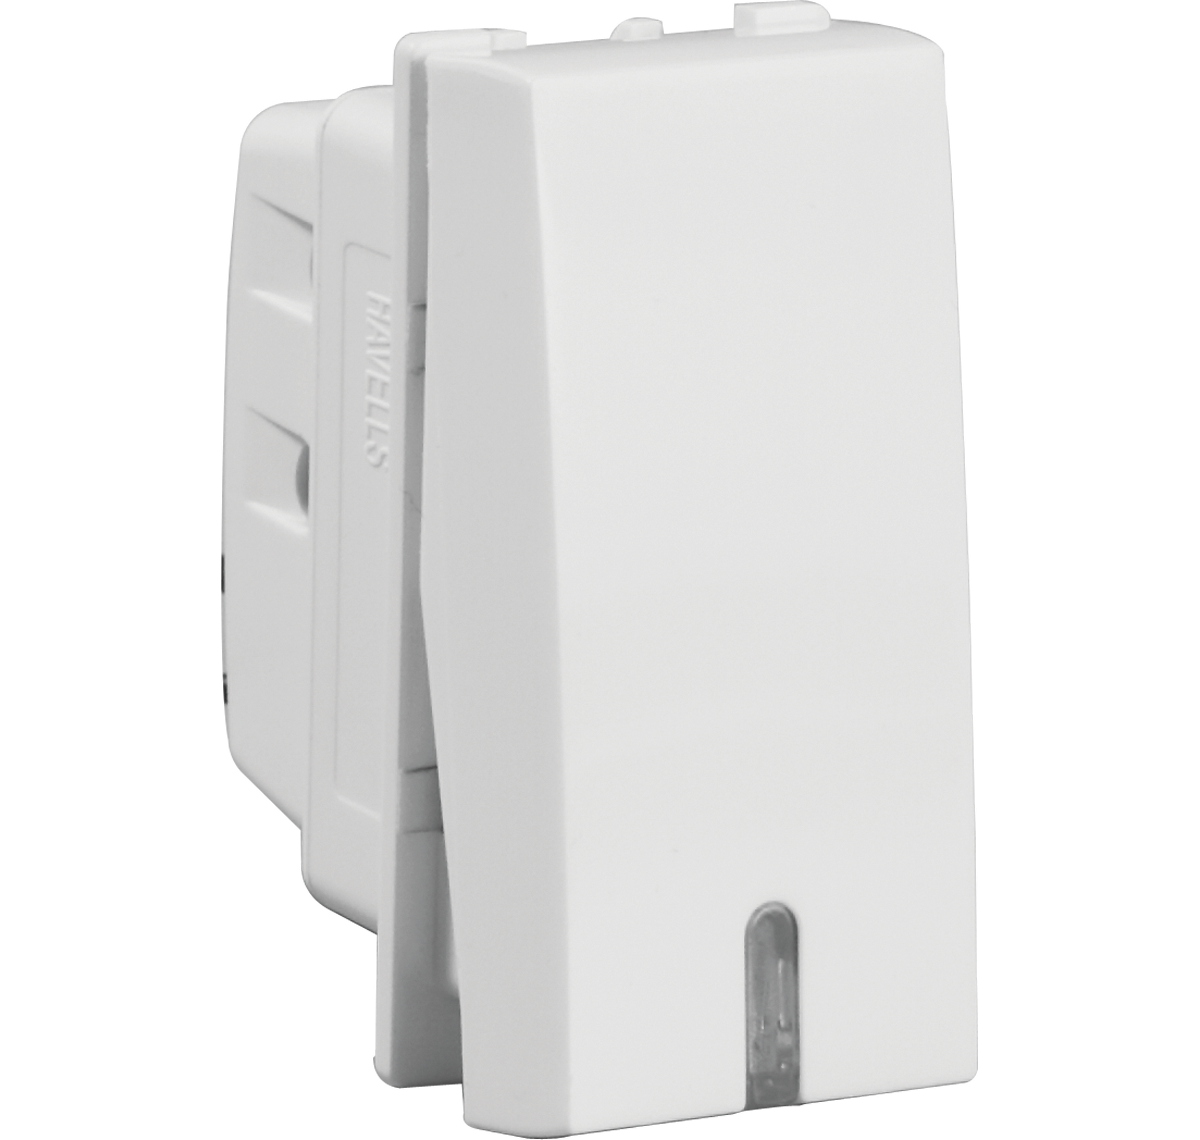 10 AX 1 way Switch with ind.